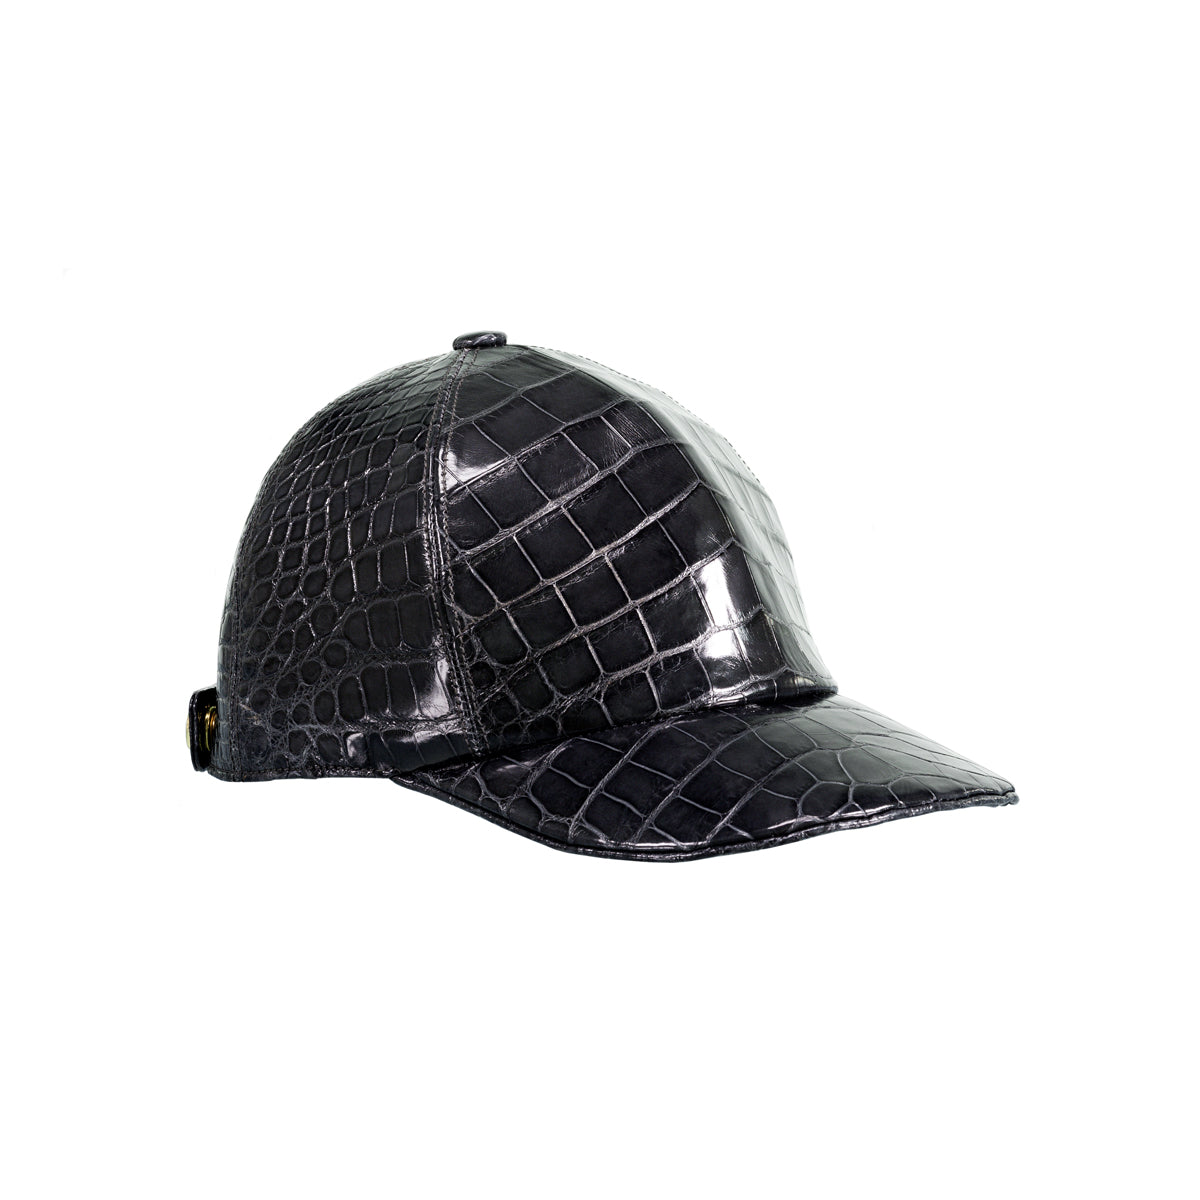 The Big Deep Baseball Hat - Black Alligator